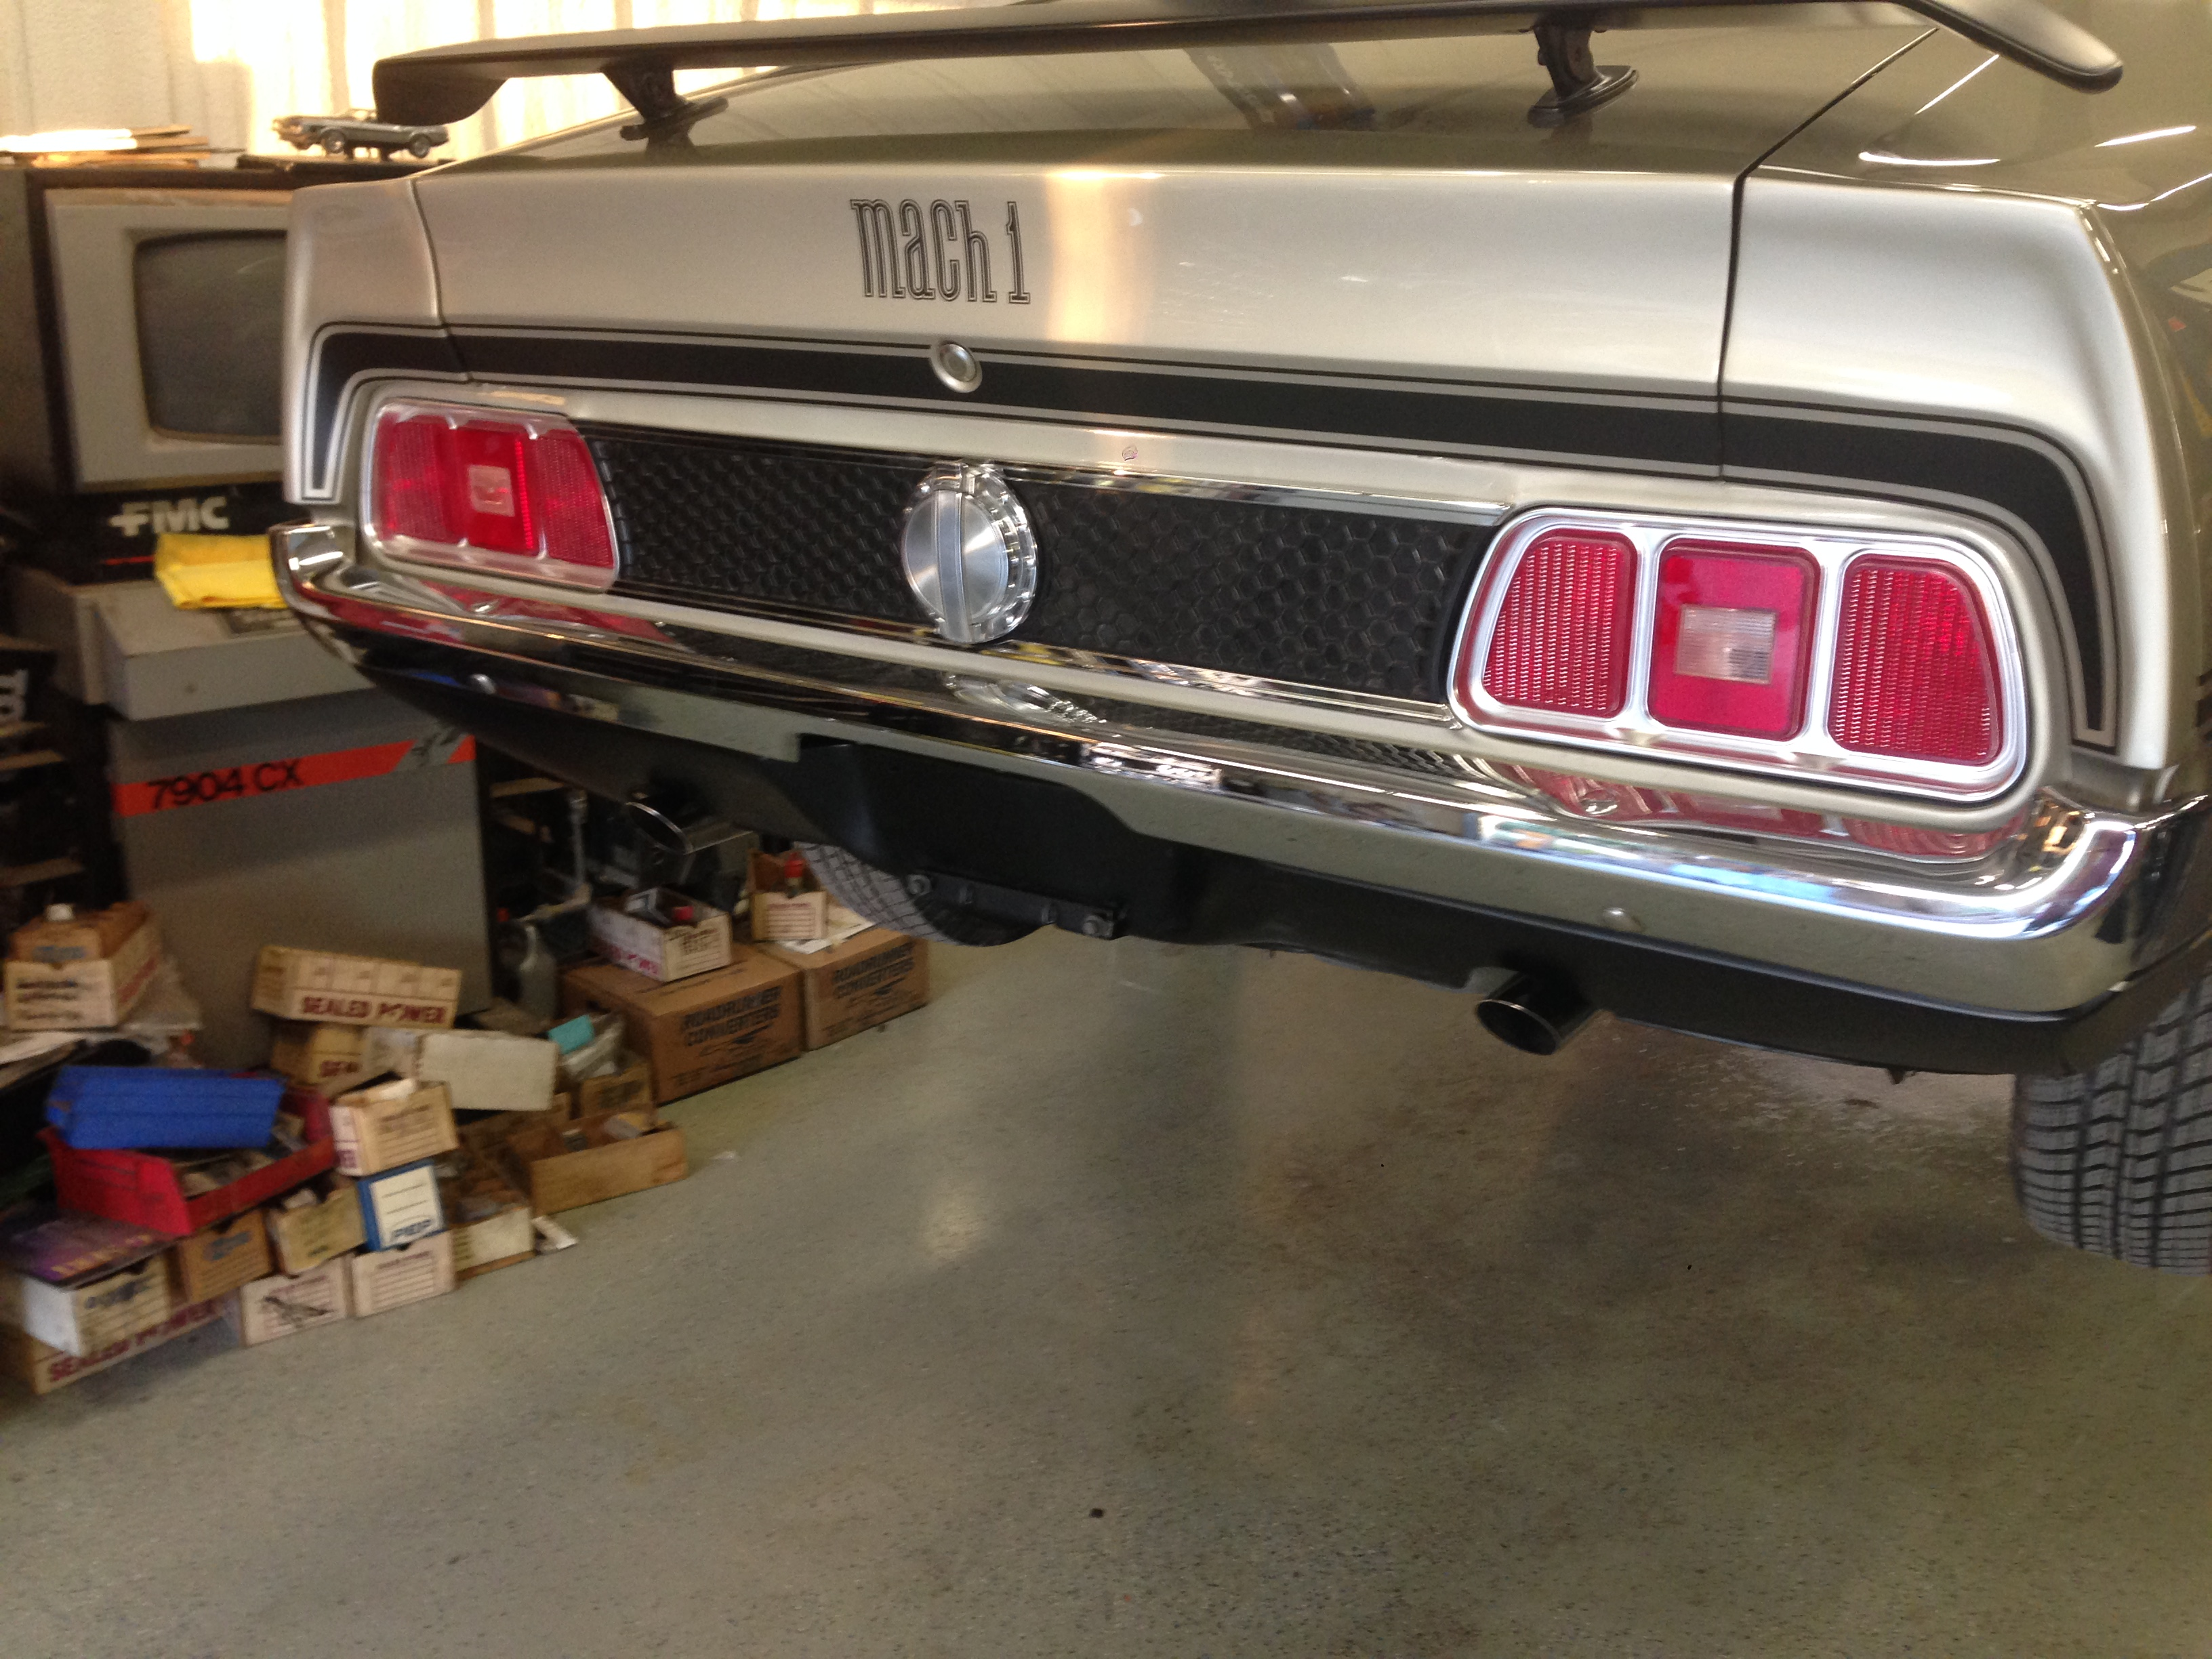 Finished rear shot of our 71 Mach I